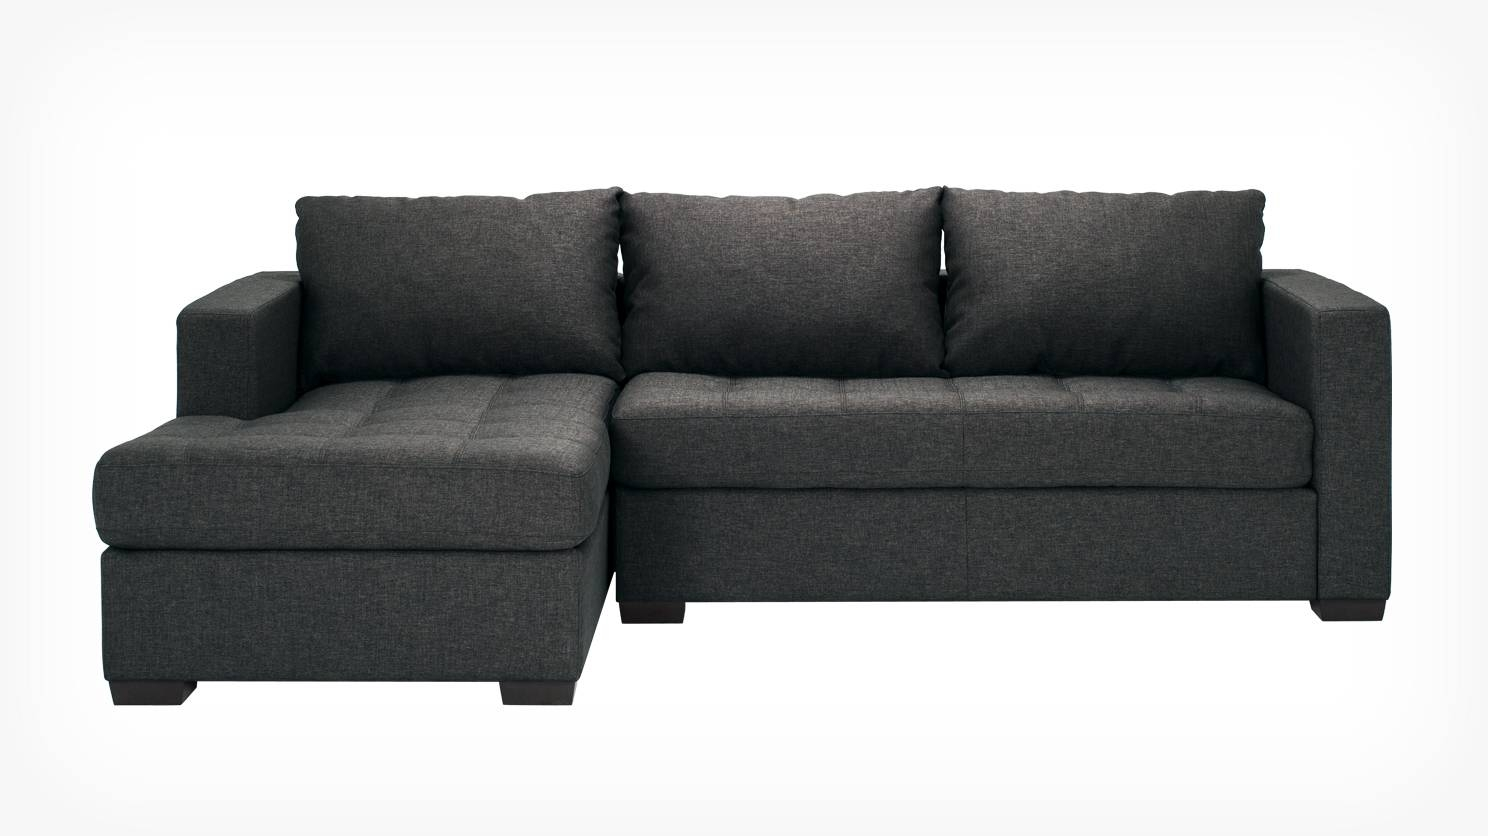 Eq3 | Porter 2 Piece Sectional Sofa With Chaise – Fabric Regarding Sectional Sofa With 2 Chaises (View 19 of 30)